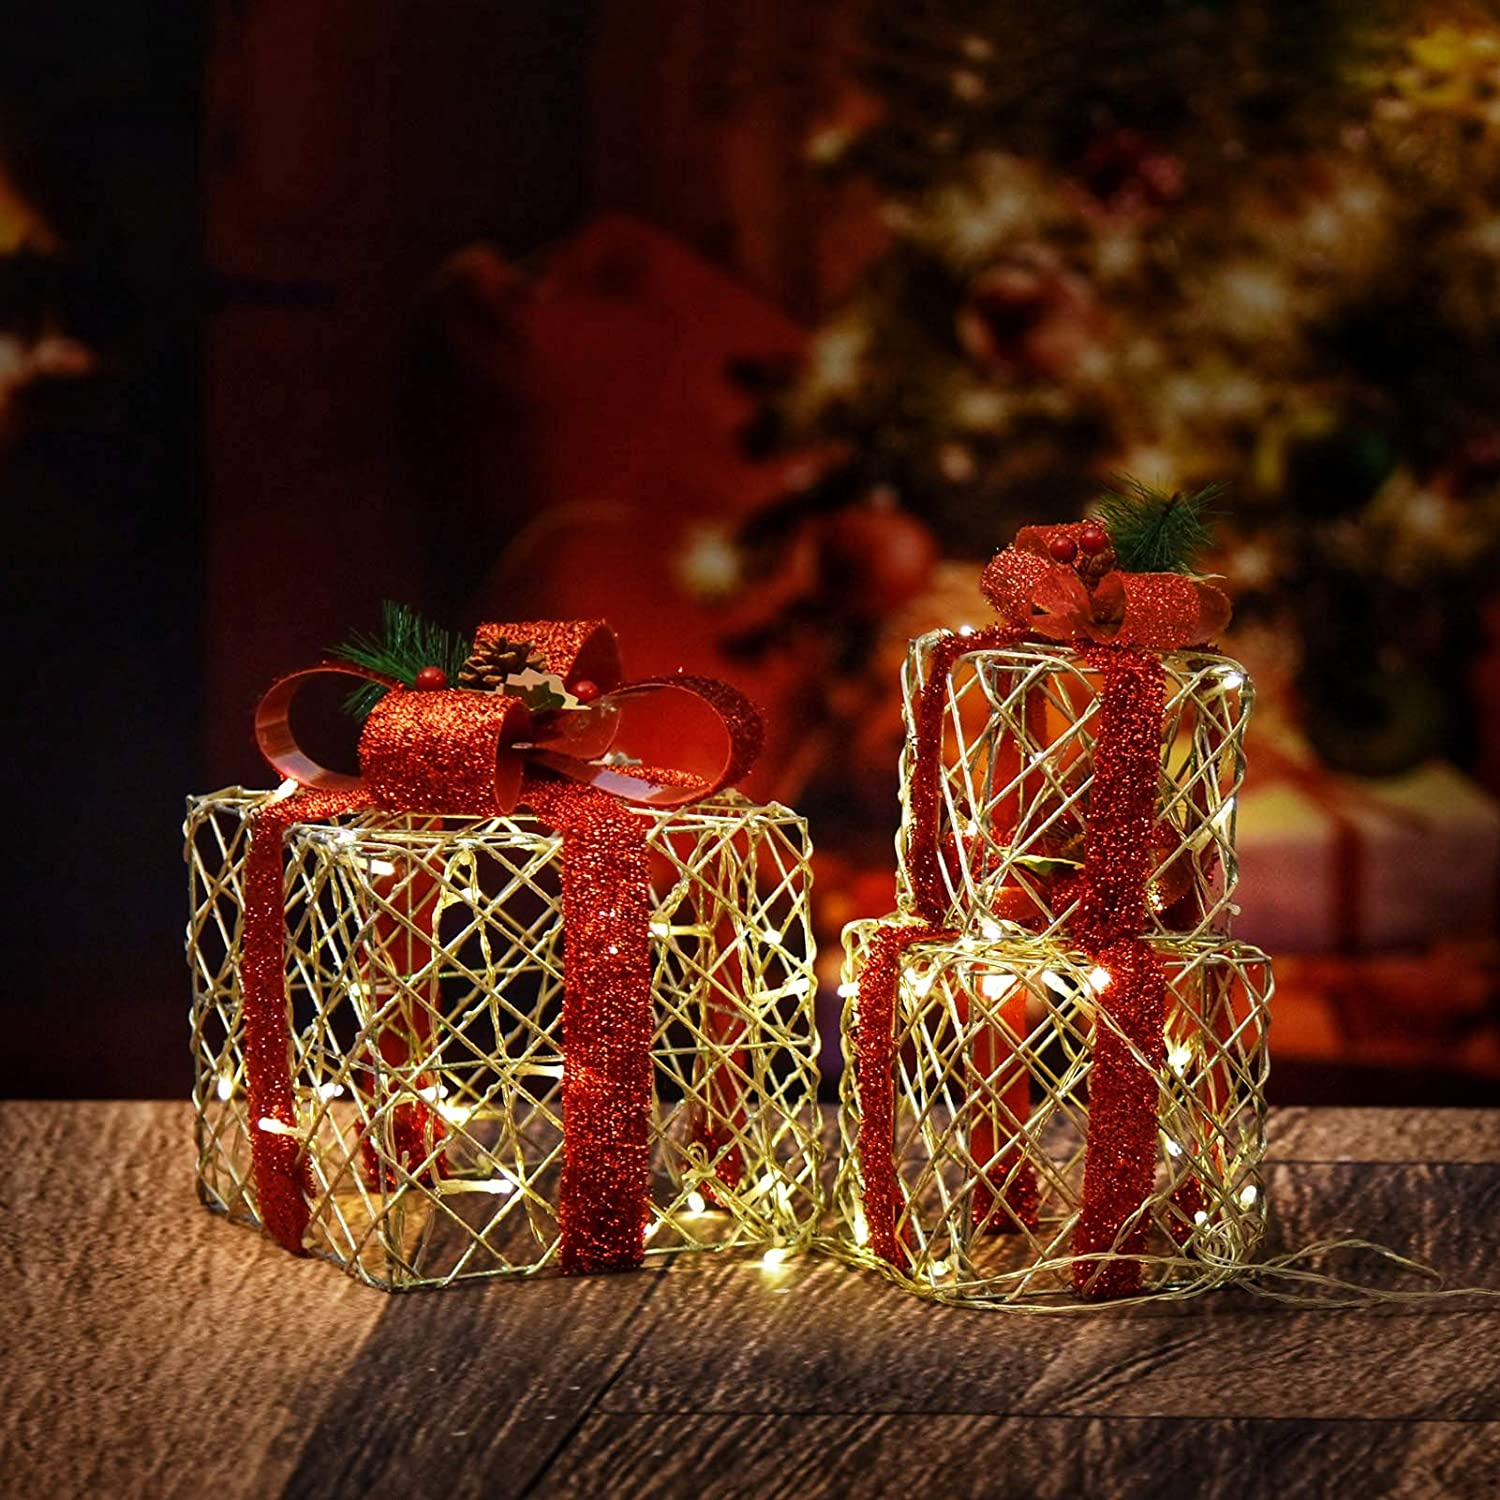 Set of 3 Christmas Lighted Gift Boxes, 48LED Light Up Gift Boxes Waterproof for Indoor Outdoor Christmas Tree Party Decor (Red Bow)